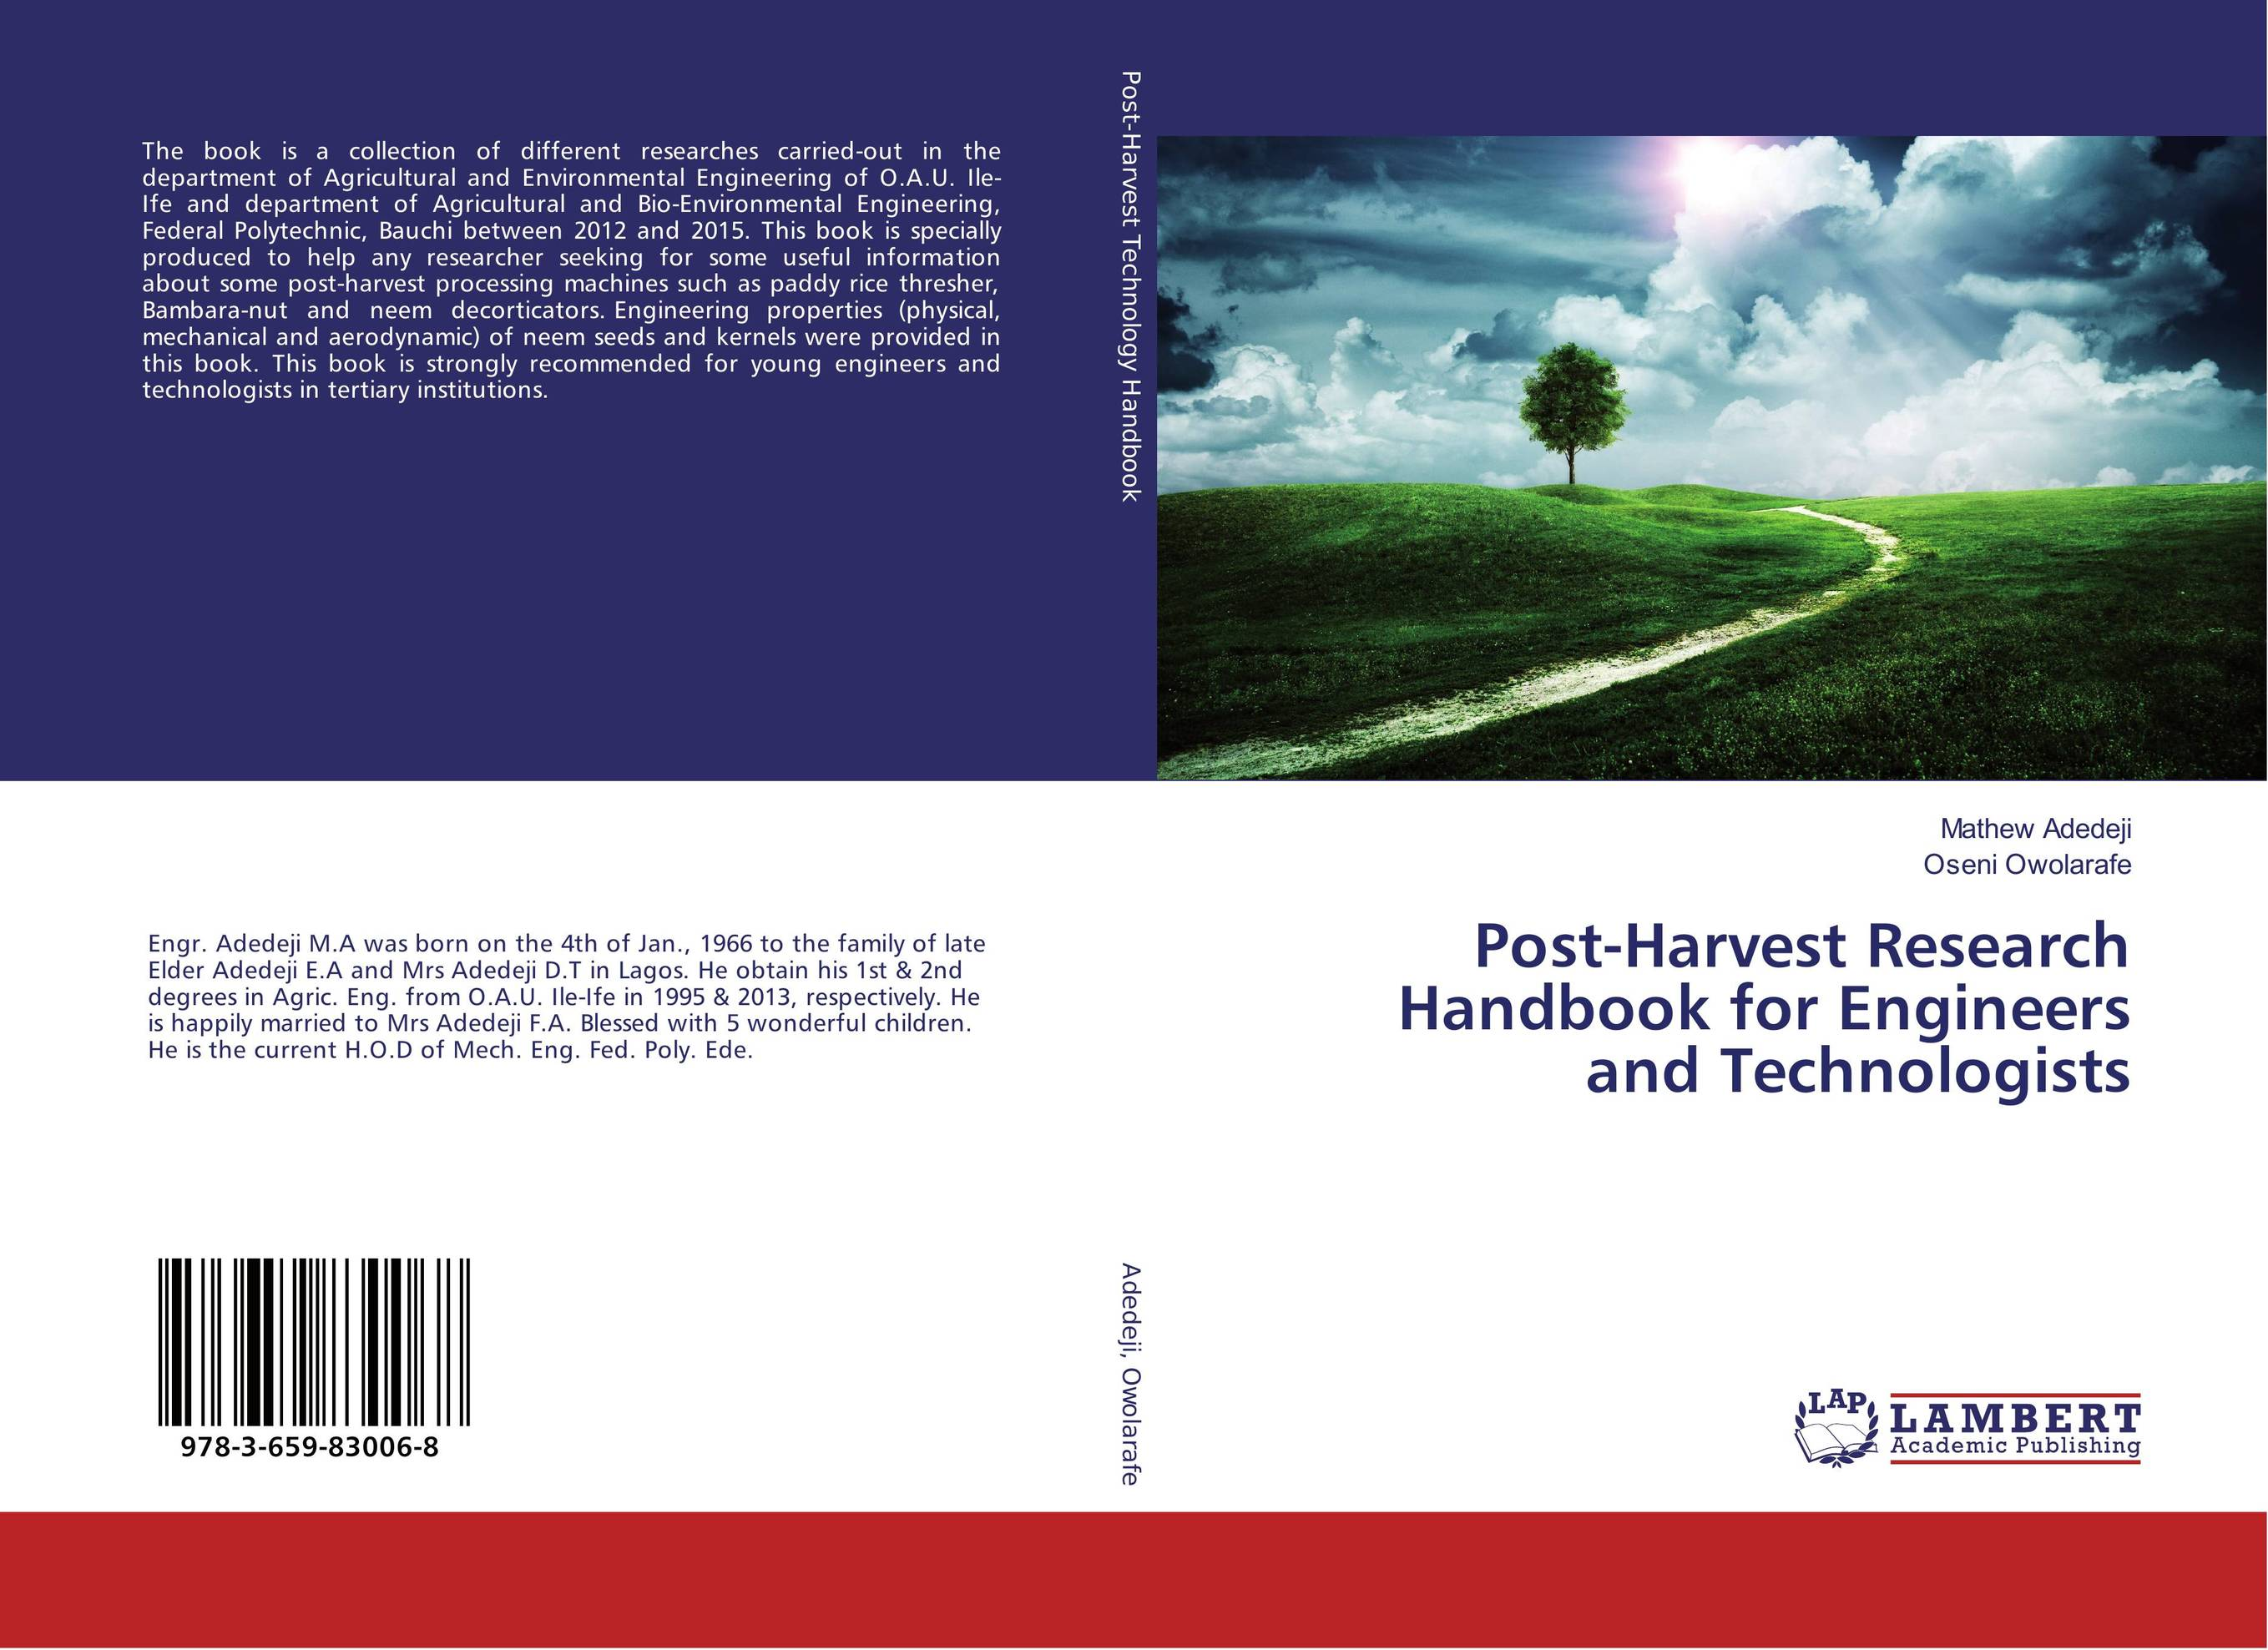 Post-Harvest Research Handbook for Engineers and Technologists